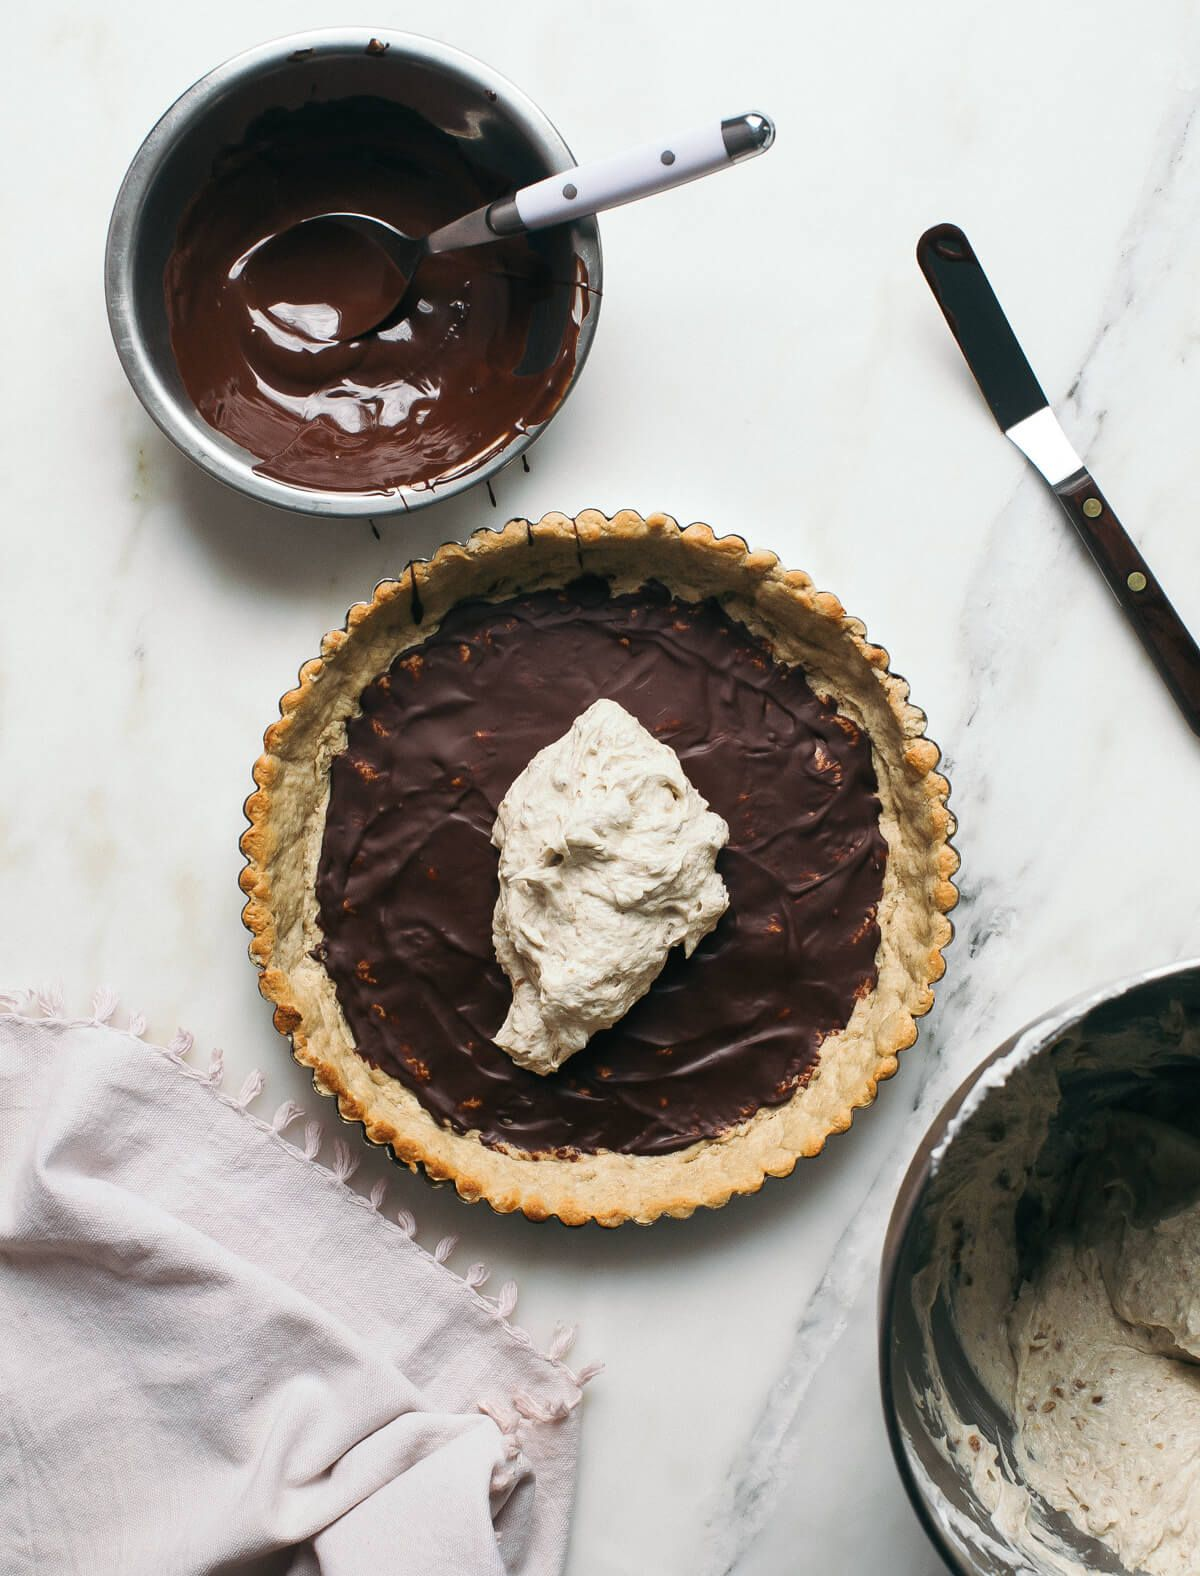 Nut Butter Coconut Chocolate Tart Recipe (With images